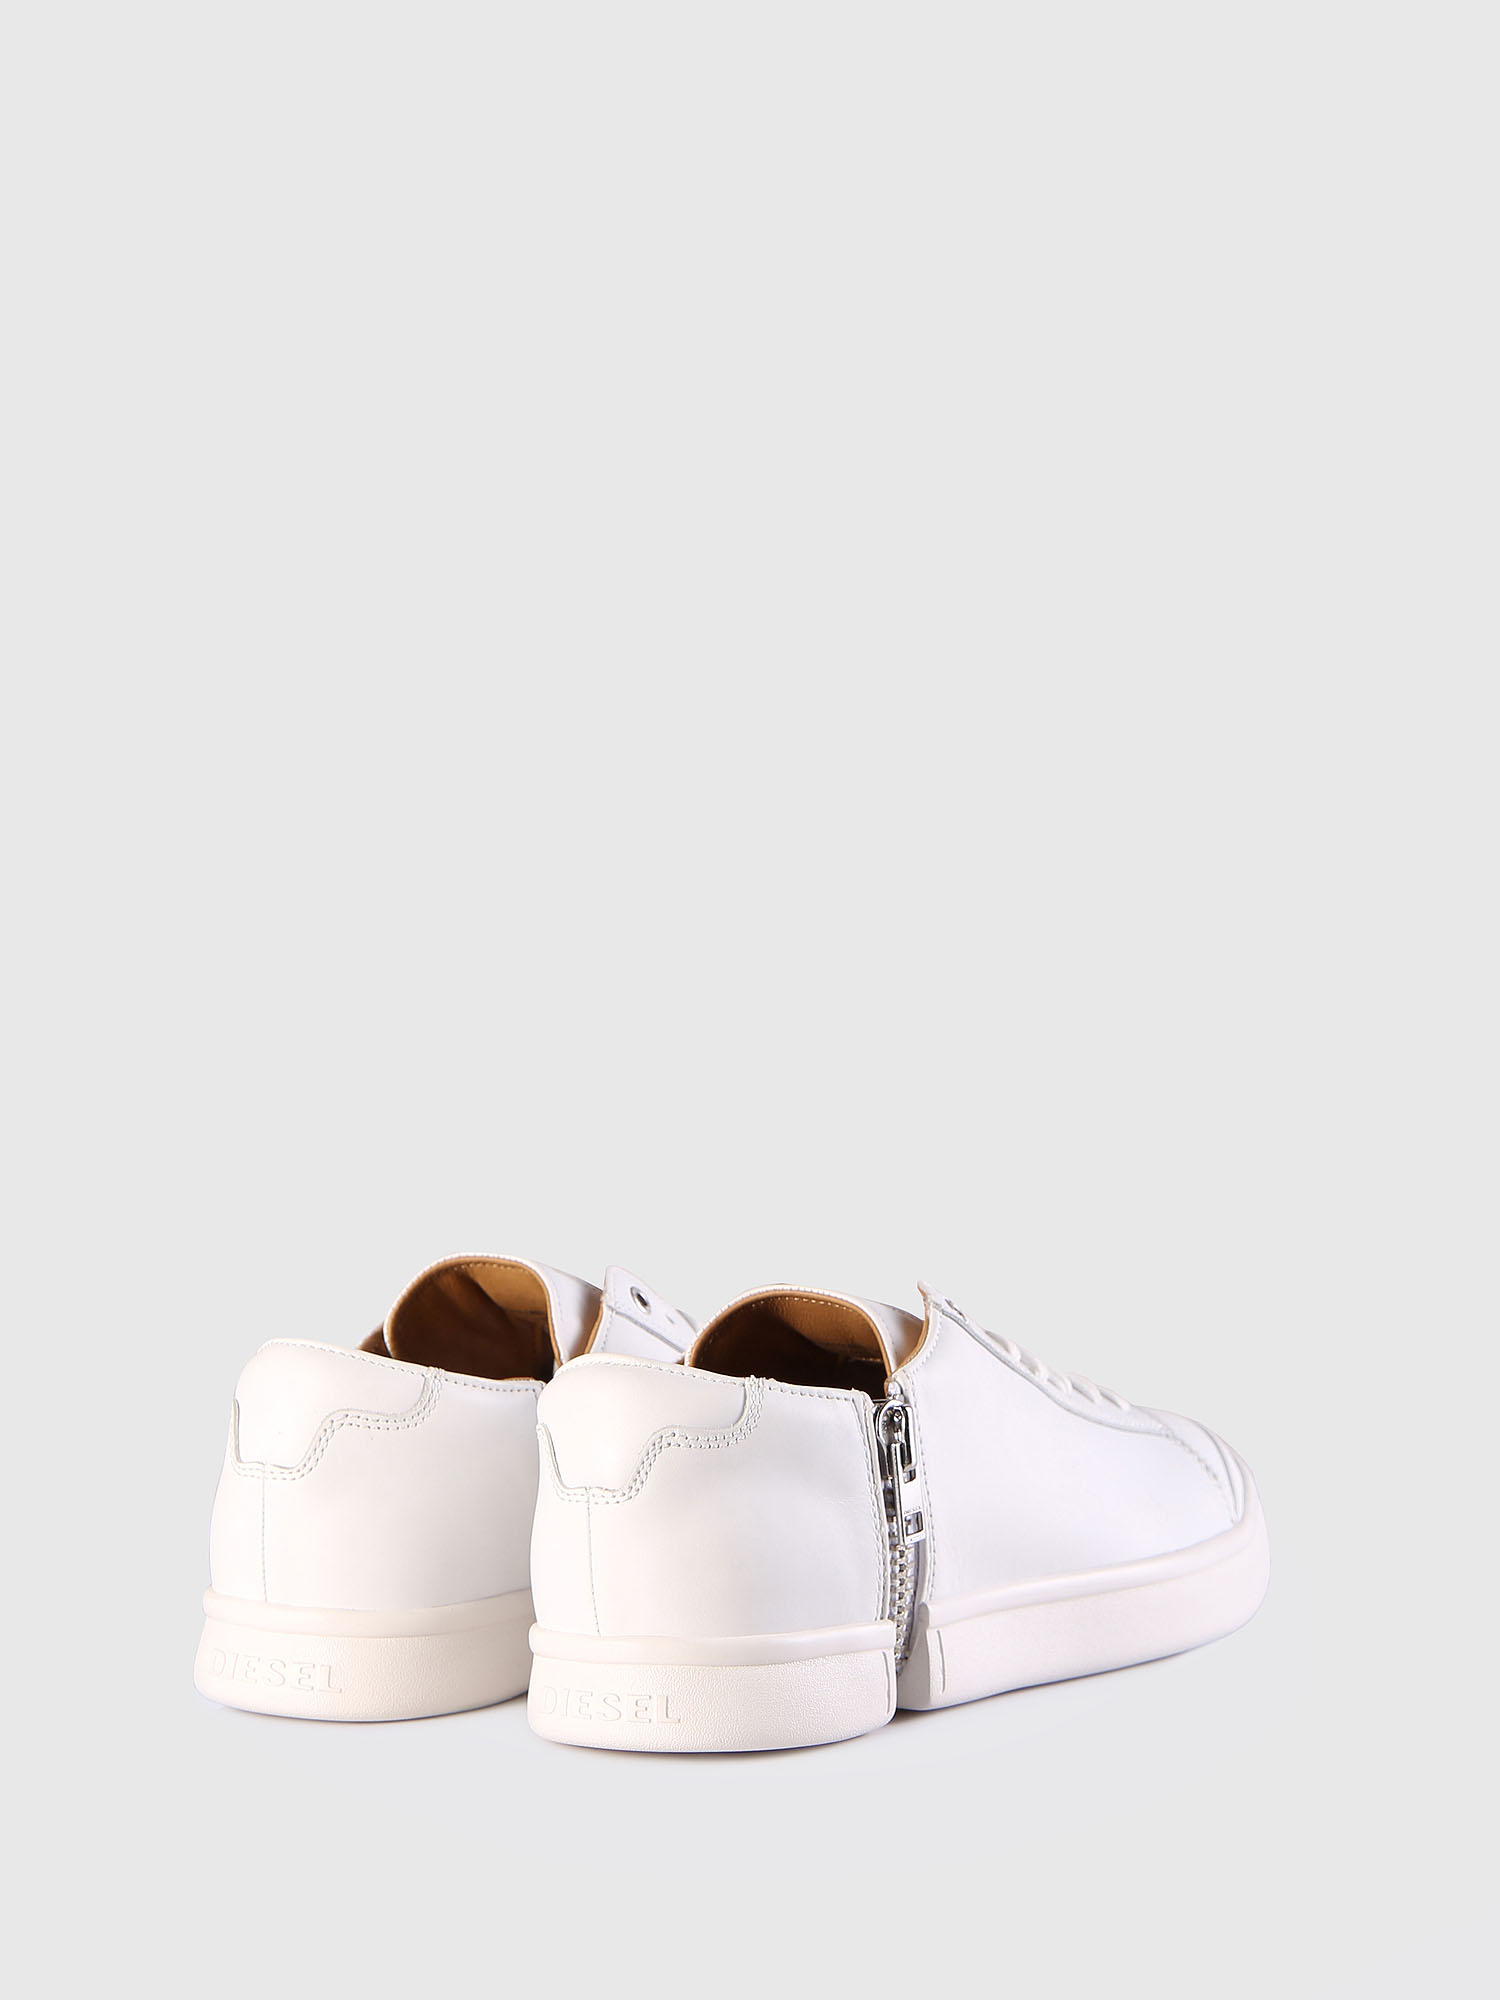 Diesel - S-NENTISH LOW,  - Sneakers - Image 3